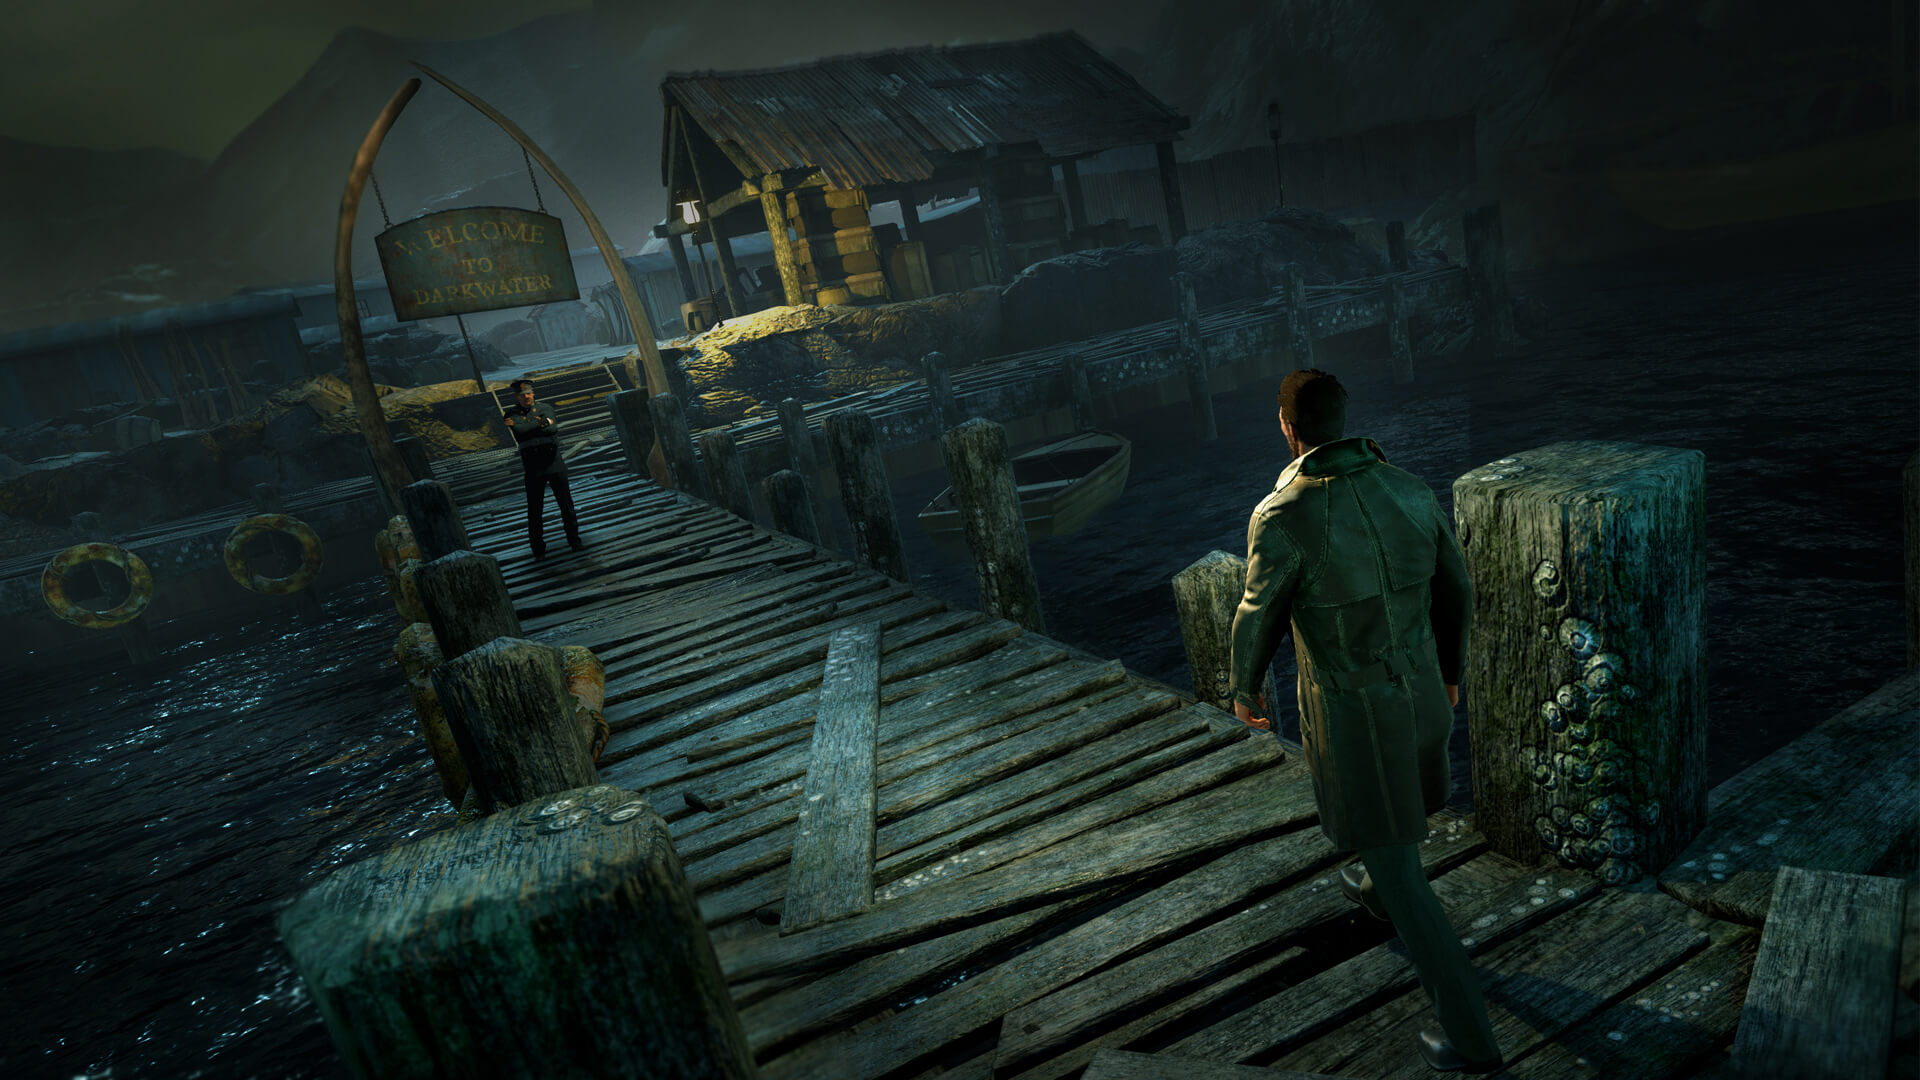 Call of Cthulhu review: Welcome to Darkwater